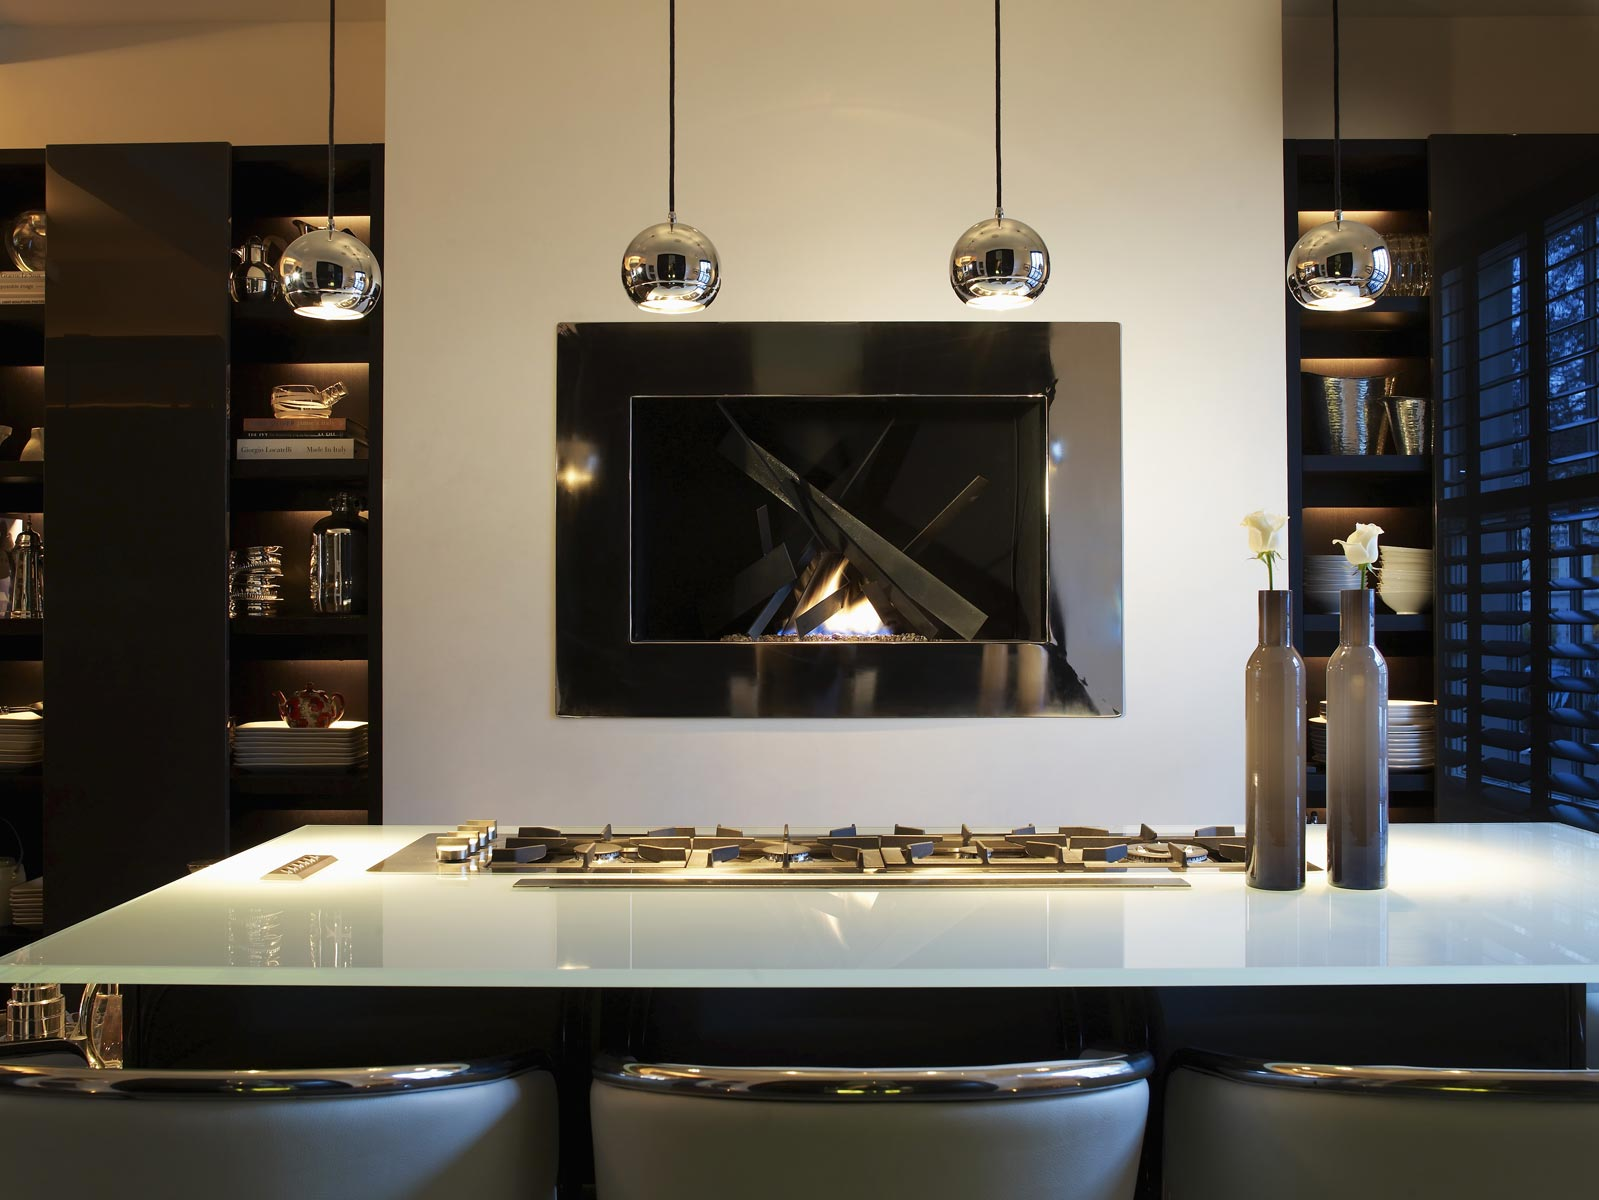 Modern Kitchen Design At The Town House London Kelly Hoppen Top 10 Kelly  Hoppen Design Ideas